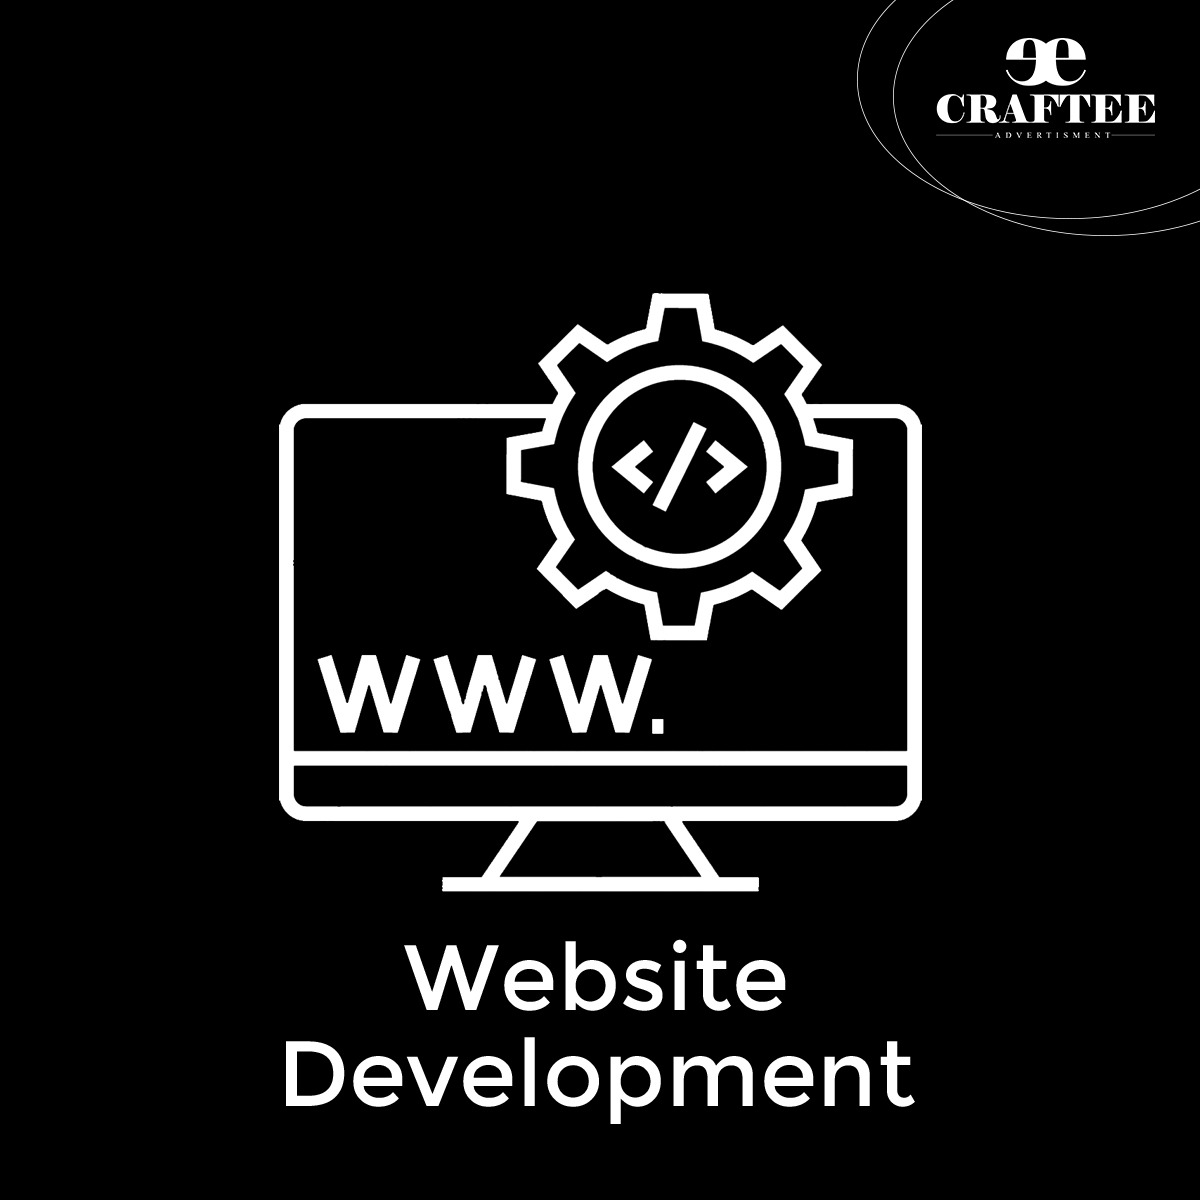 A website development tool provides companies with a podium for the necessary web presence and allows them to get in touch with millions of web surfers all over the world widening the range of their potential customers. #Craftee #WebsiteDevelopment <br>http://pic.twitter.com/Y4EcWsvAjQ